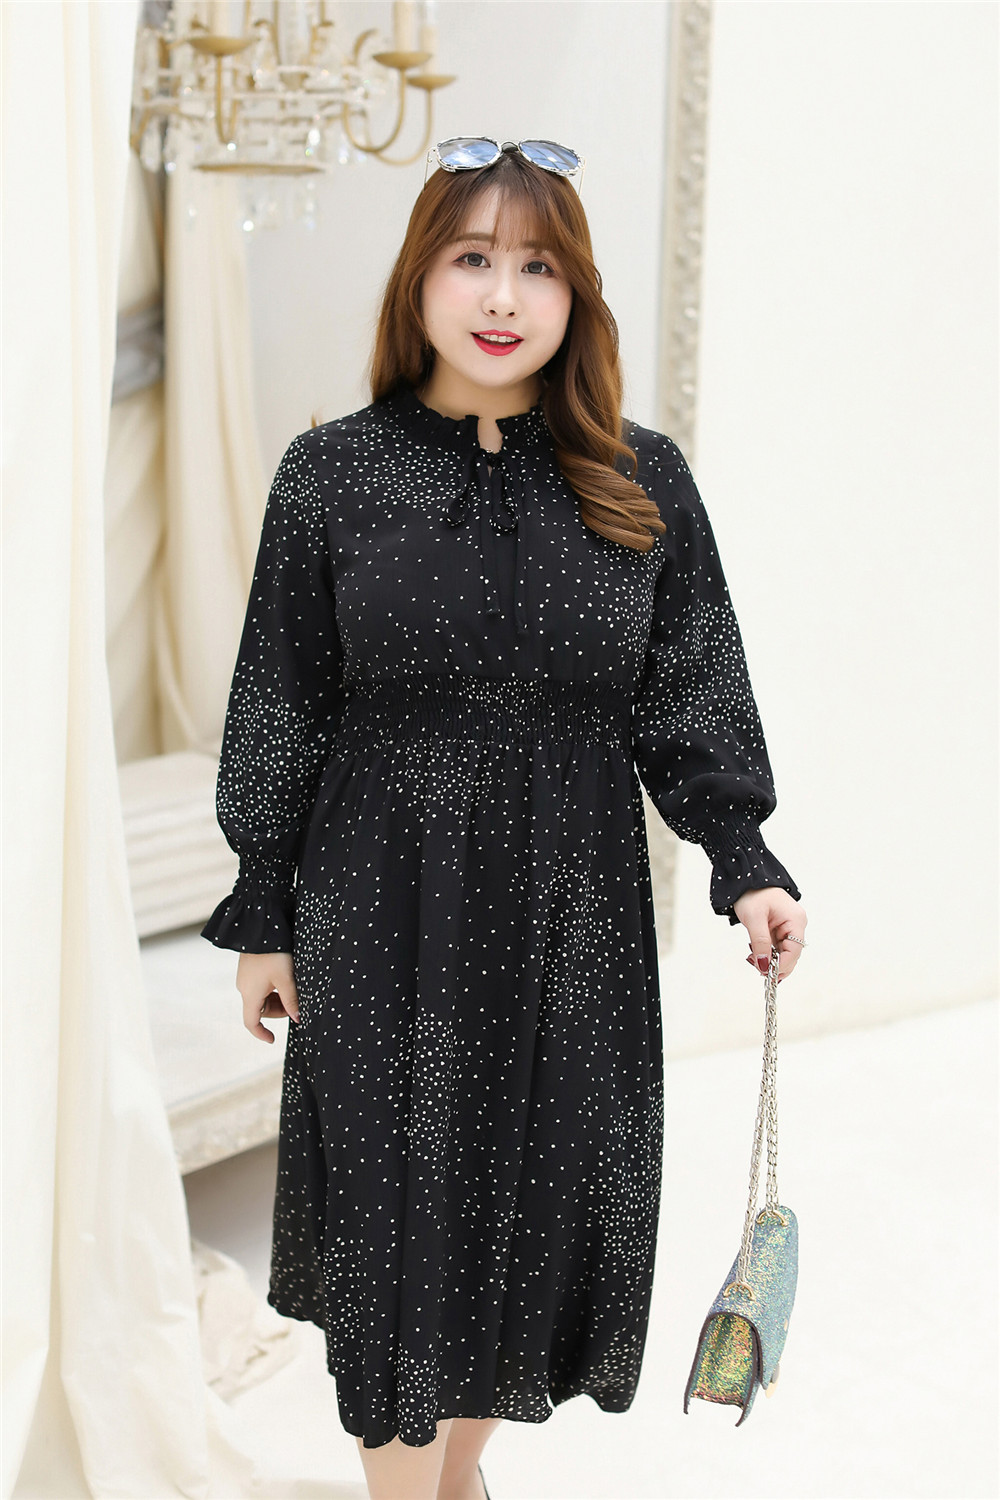 MINSUNDA Plus Size Ruffle Trim Tie Neck Polka Dot Dress Casual Women Elastic Waist Long Sleeve Dress Ladies A Line Summer Dress